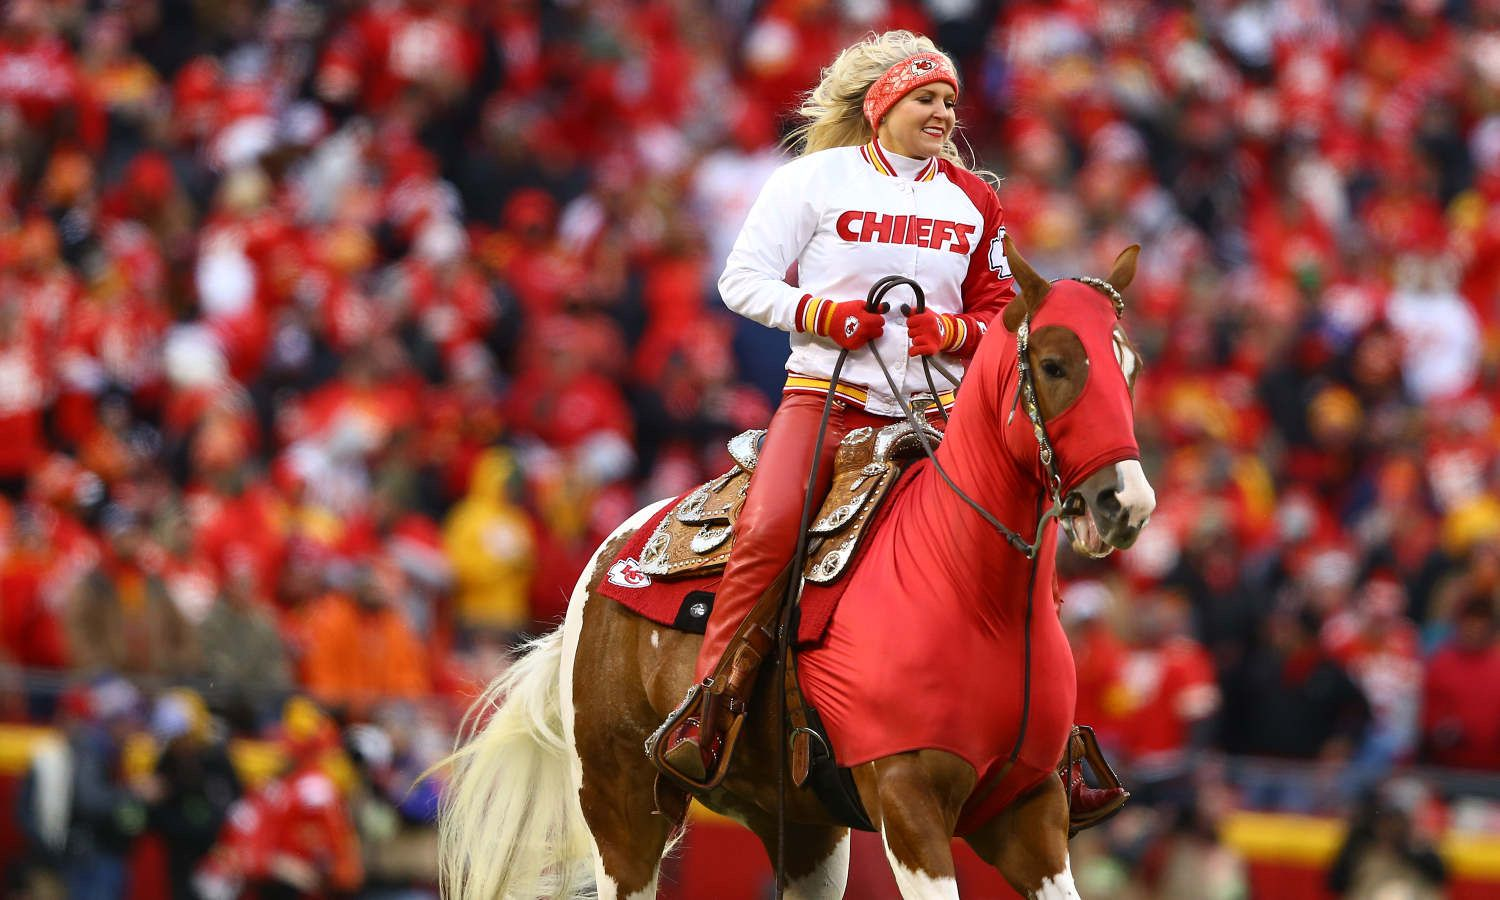 Kansas City Chiefs Mobile Susie And Warpaint During The Game Between The Kansas City Chiefs And The Los Angeles Red Leather Jacket Kc Chiefs Arrowhead Stadium [ 900 x 1500 Pixel ]